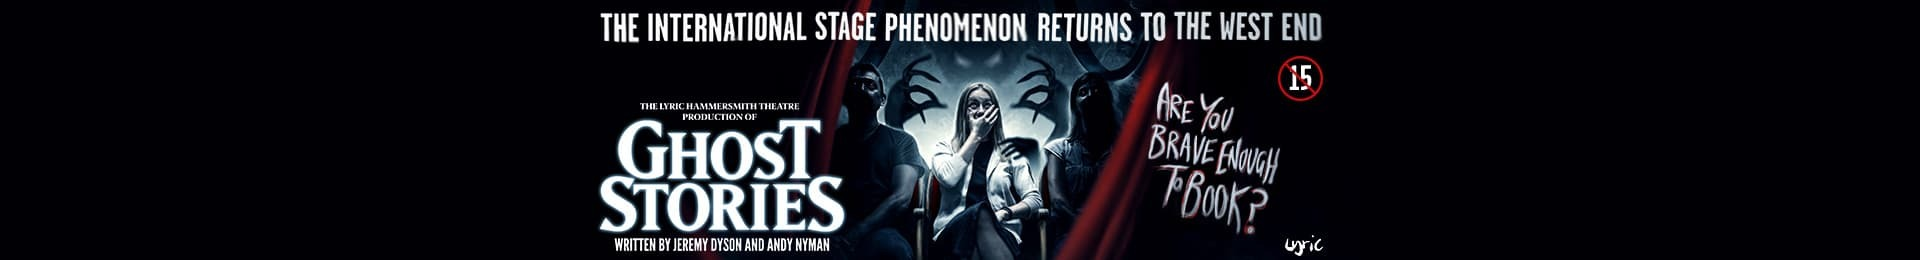 Ghost Stories banner image